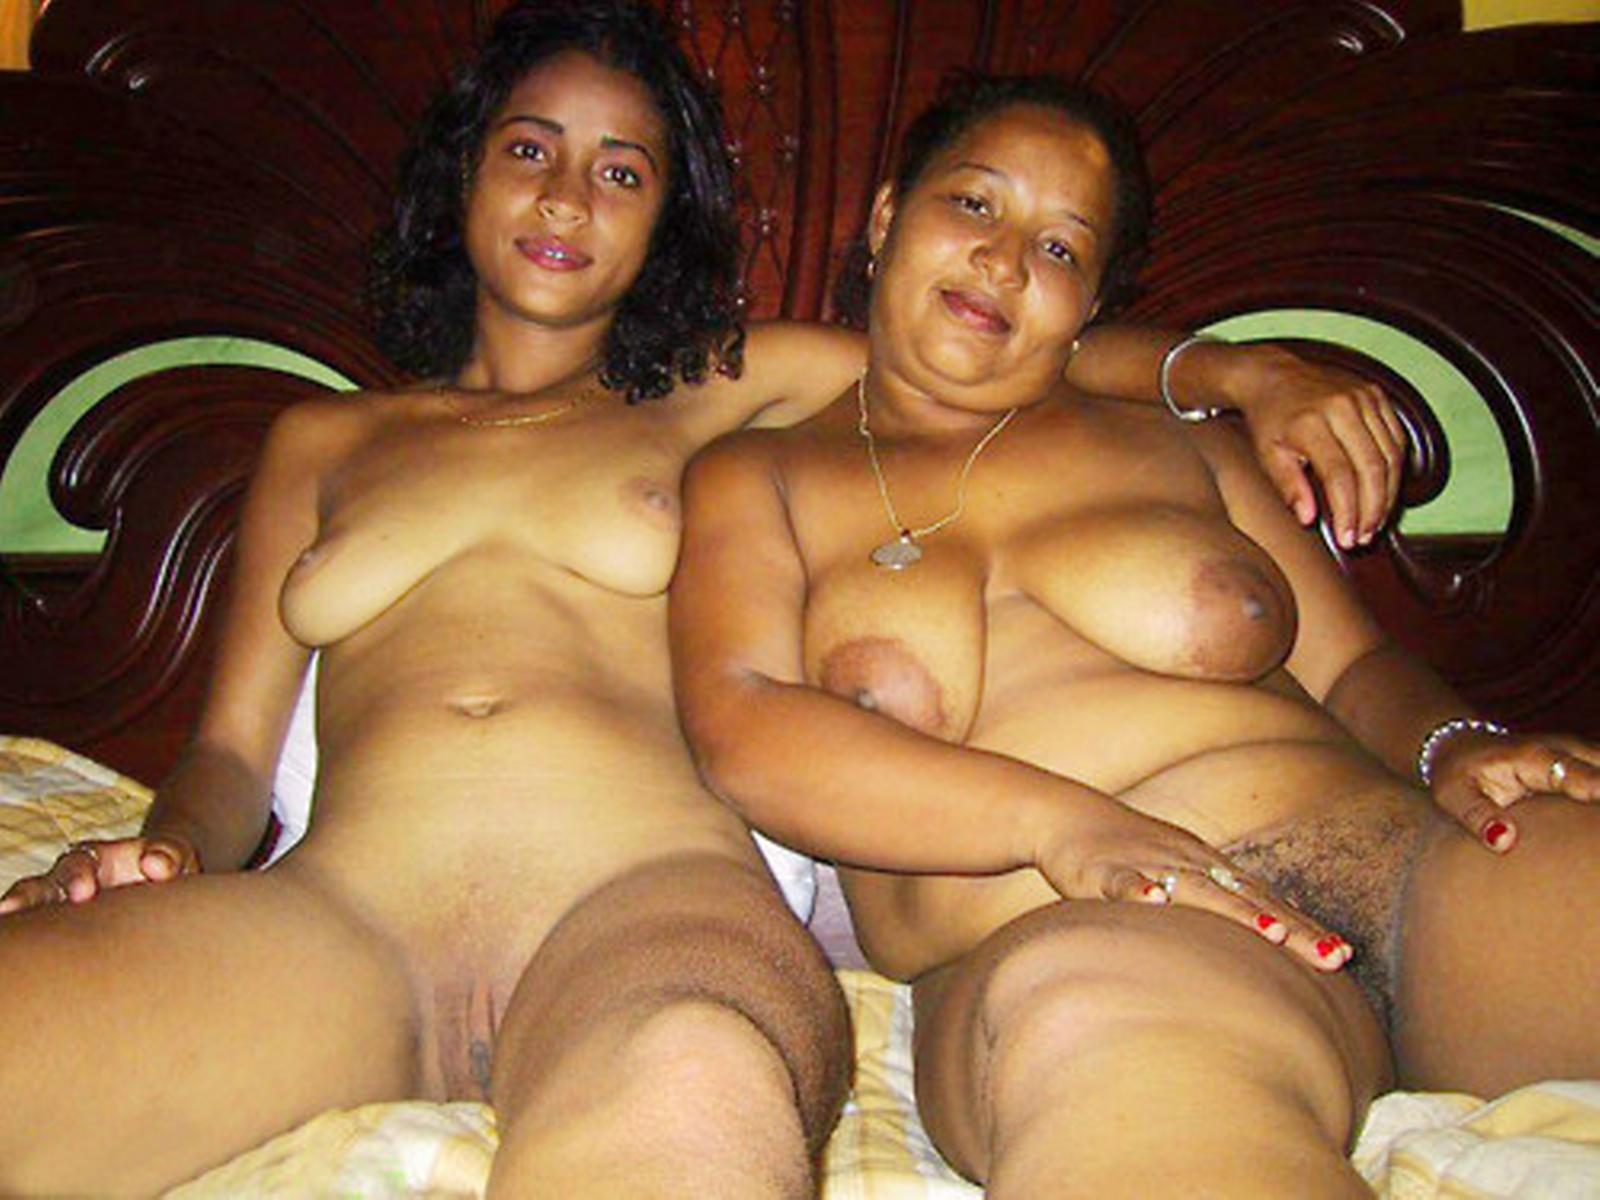 real incest fsmily motherless home Mothers posing nude with their daughters